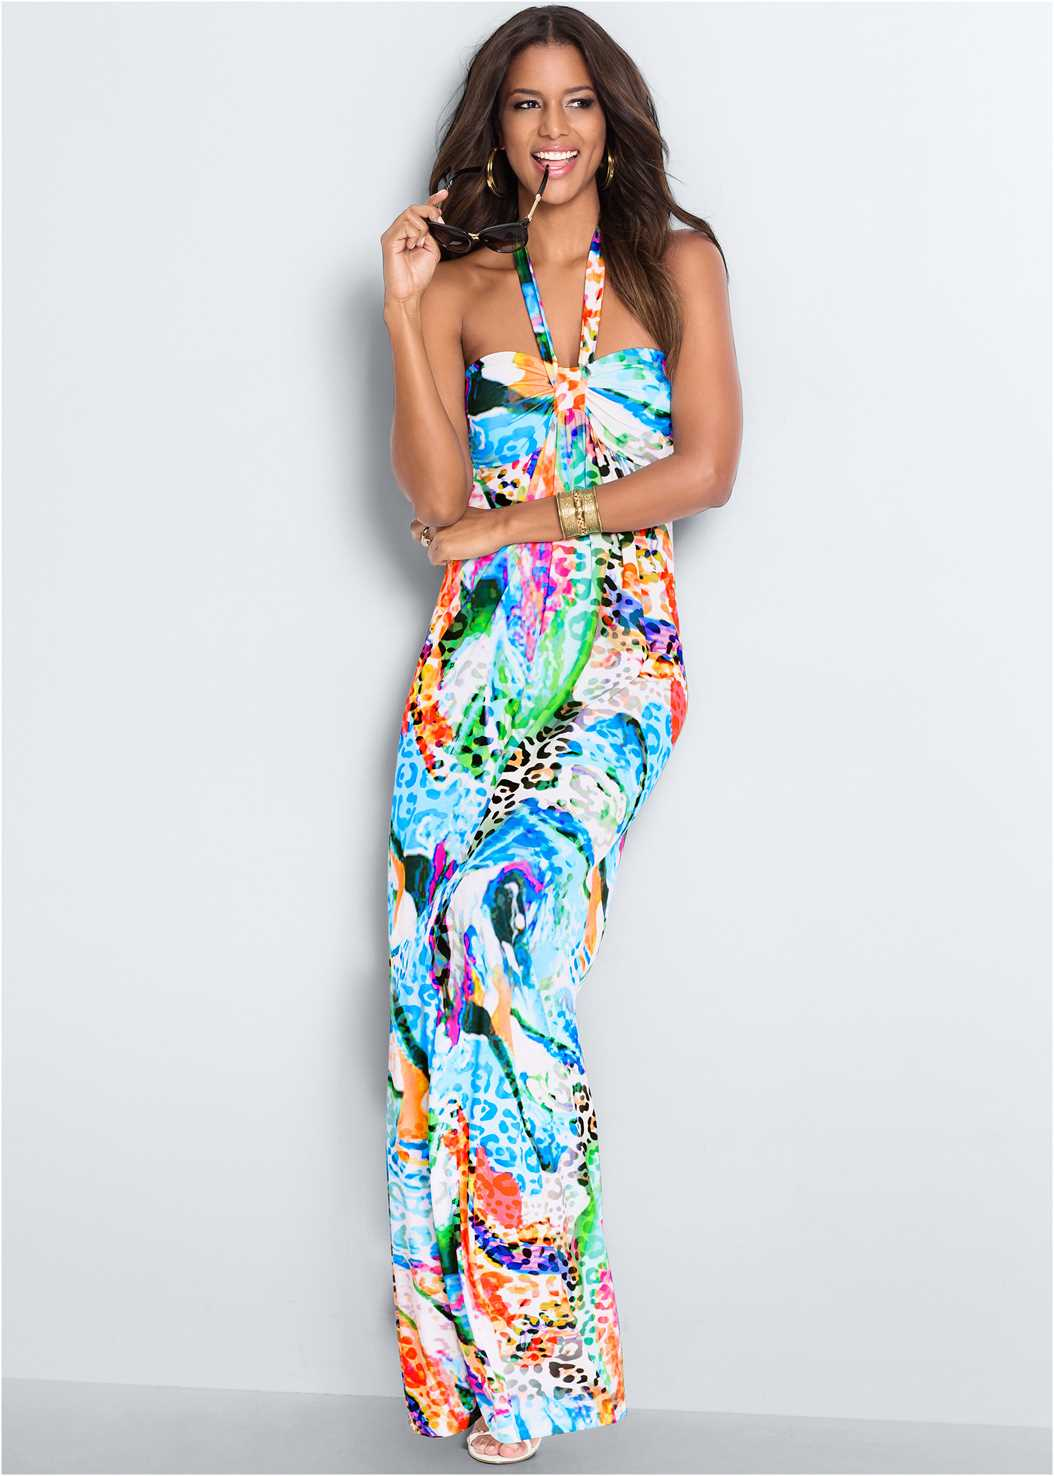 Printed Halter Dress,Embellished Sandals